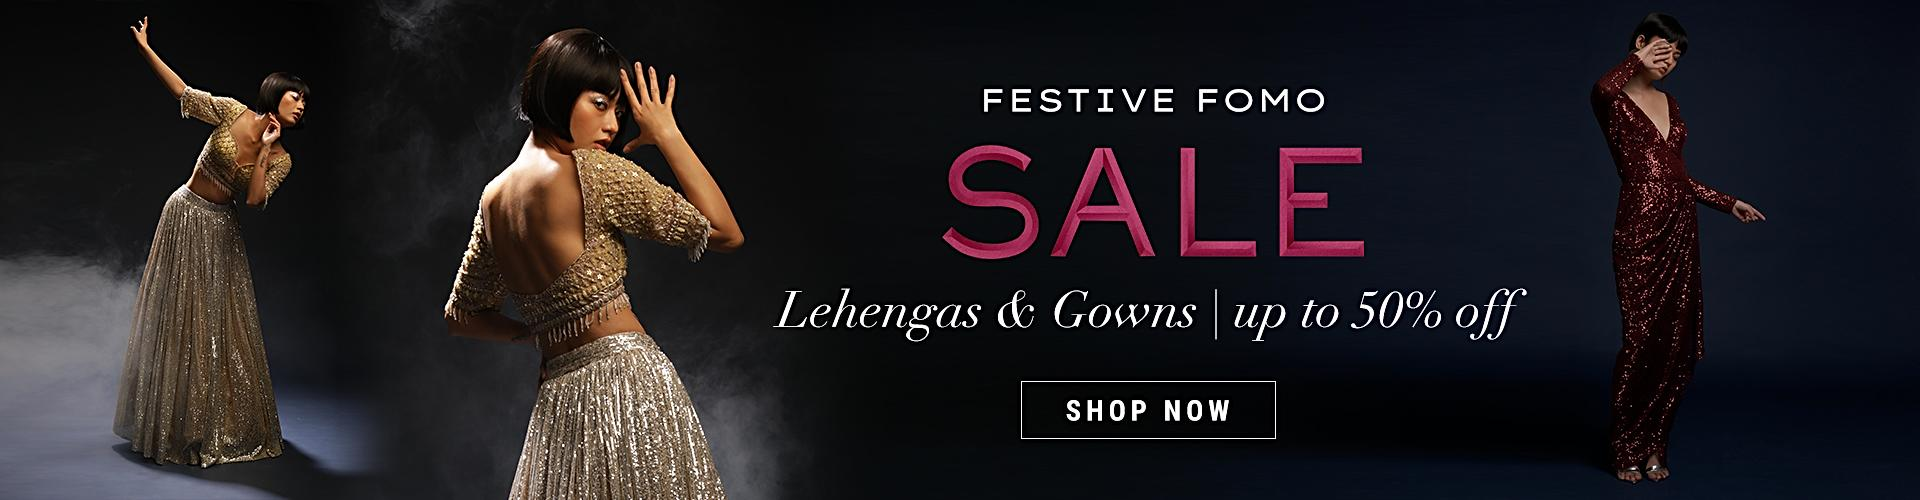 Lehengas and Gowns